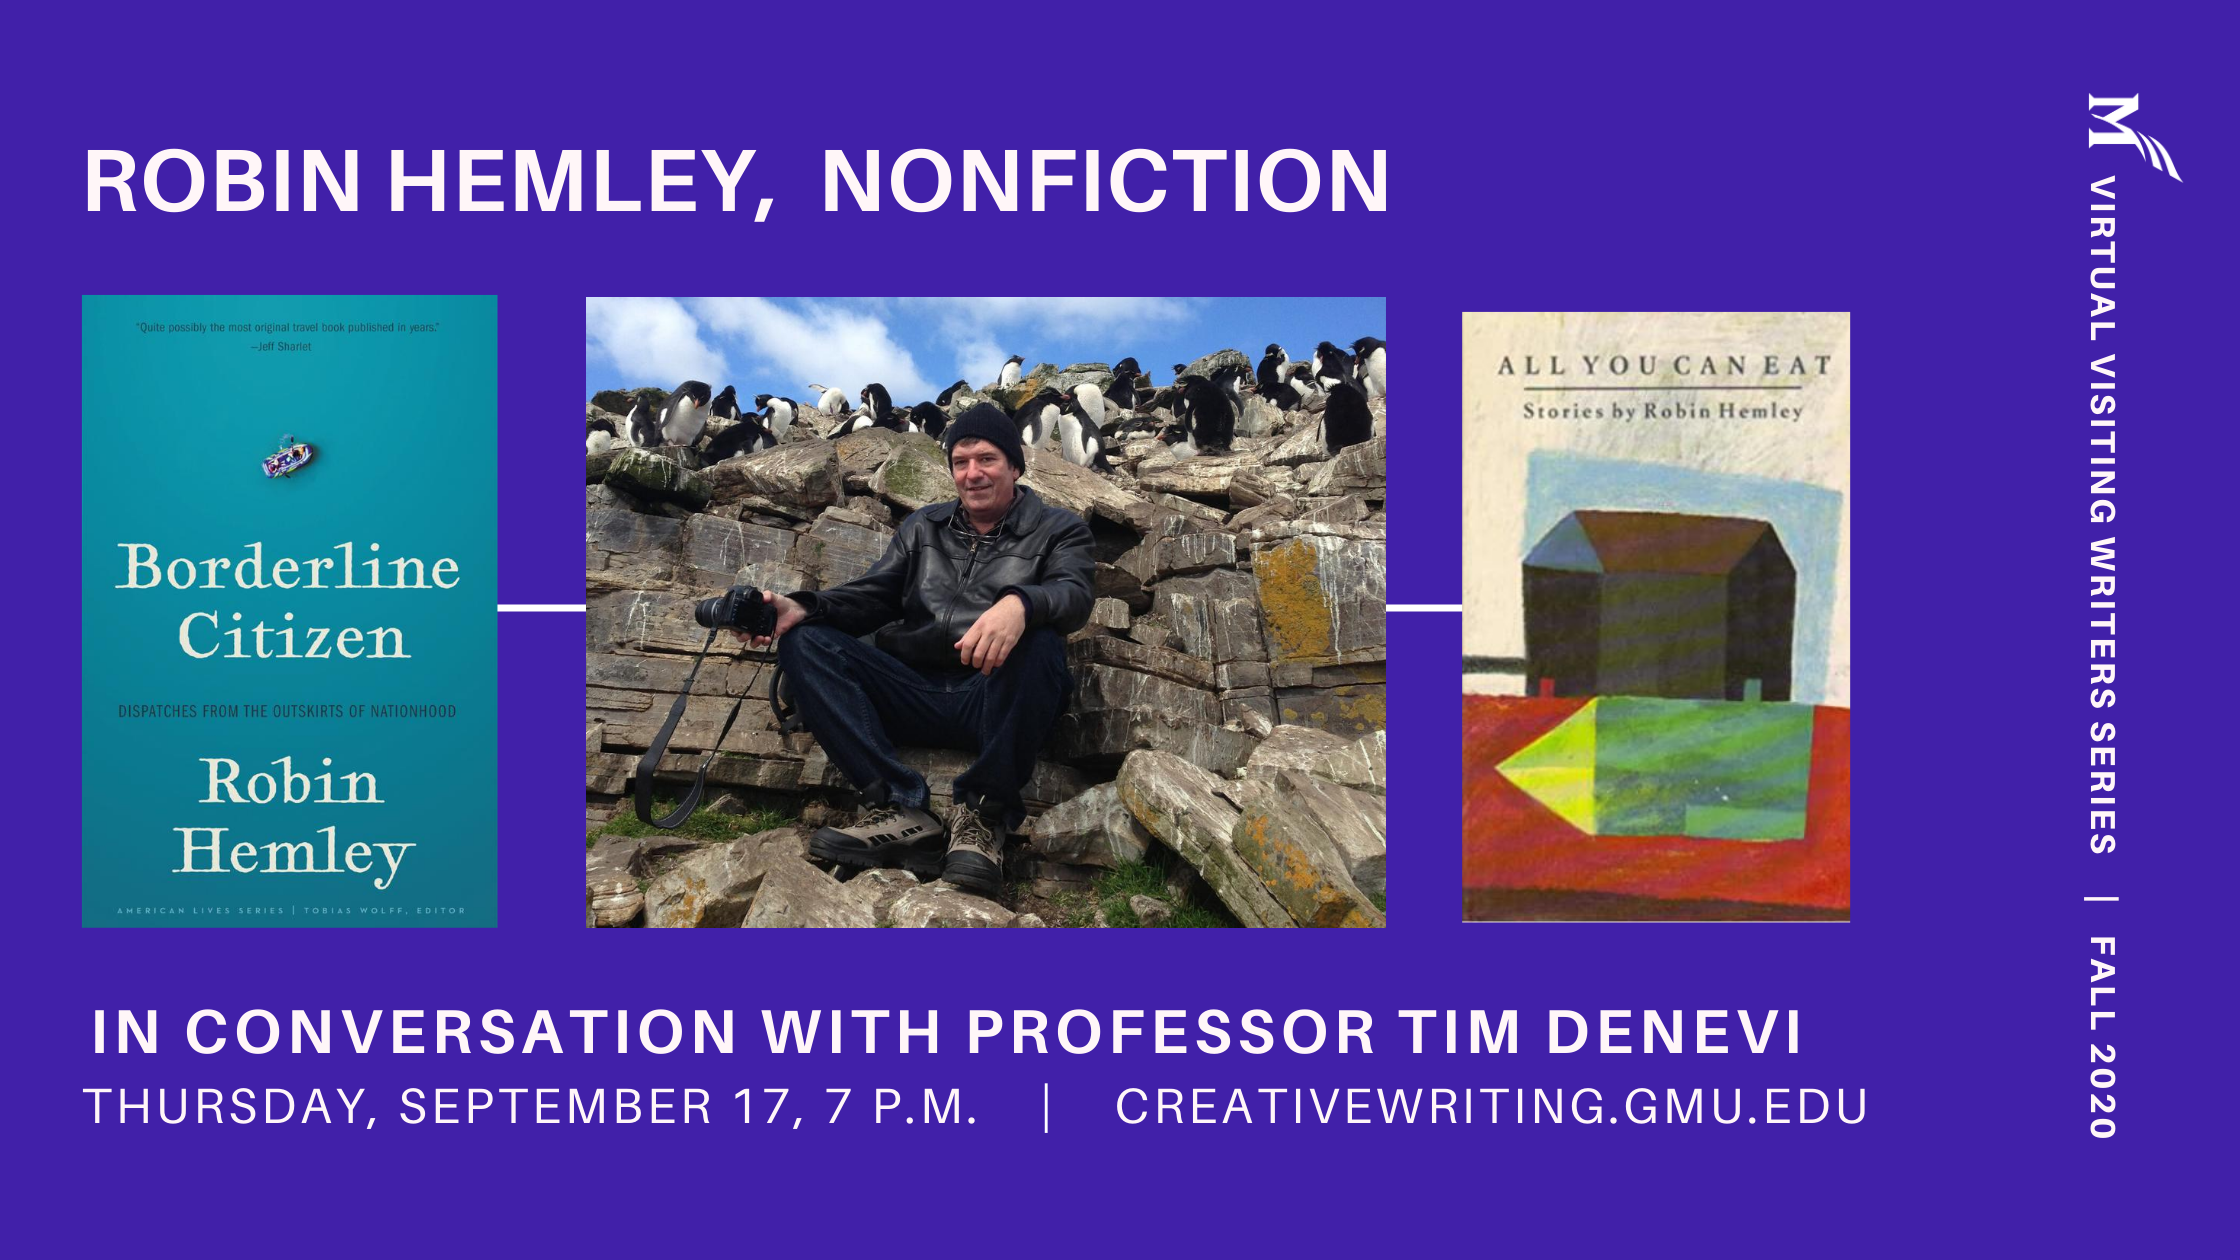 Visiting Writers Series Welcomes Robin Hemley